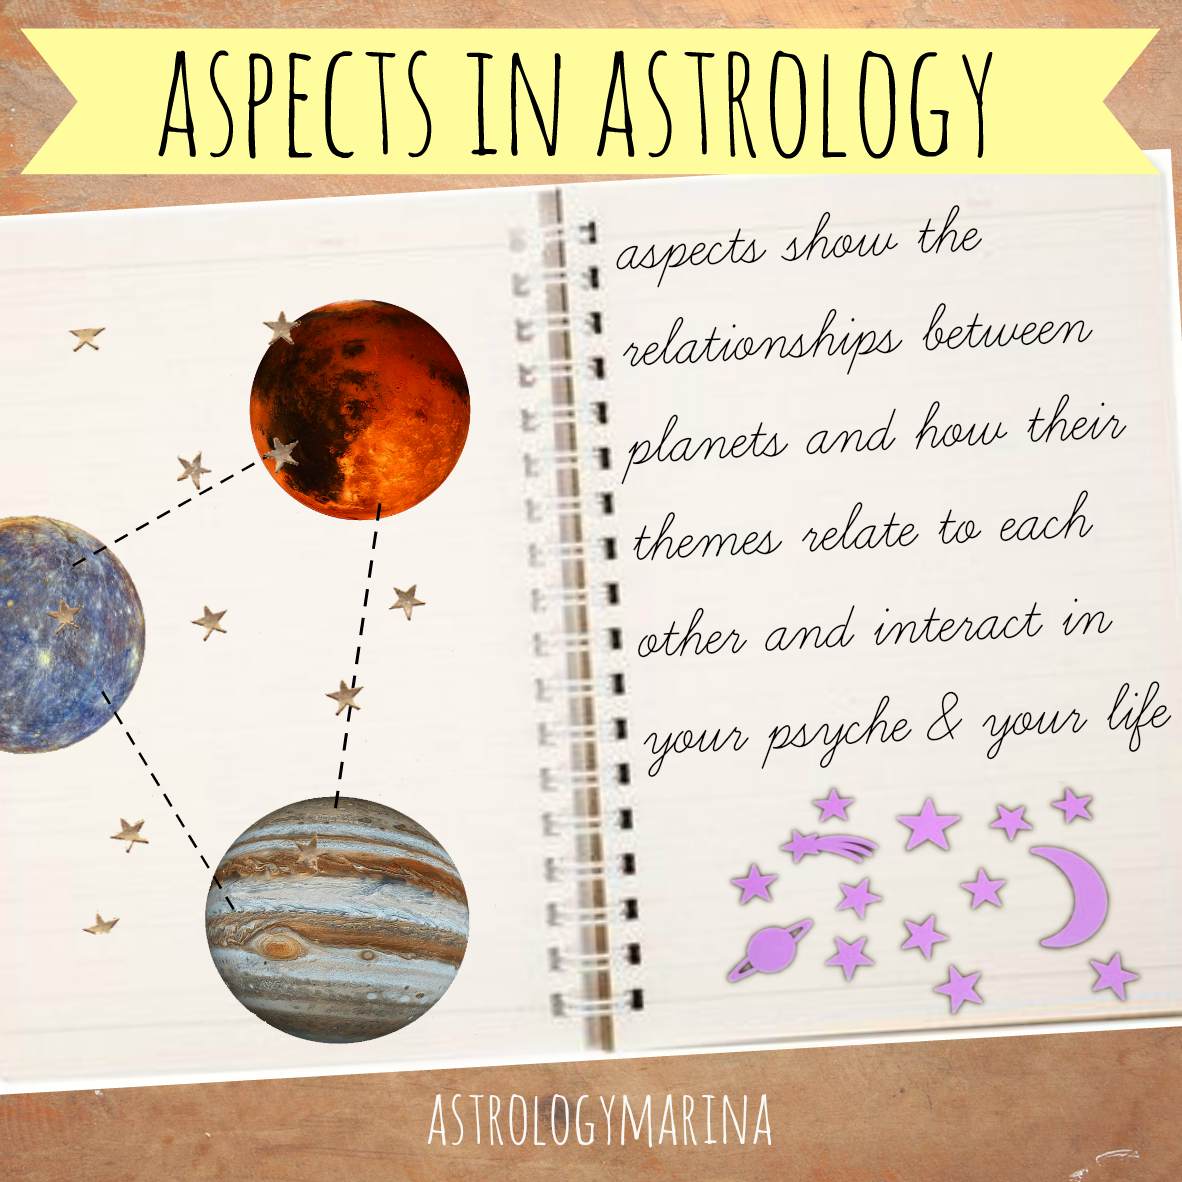 Astrology marina what are aspects in astrology how do i find out this is going to be a quick and simple introduction to the astrological aspects simply to lay the foundation of basic knowledge because i want to start nvjuhfo Image collections